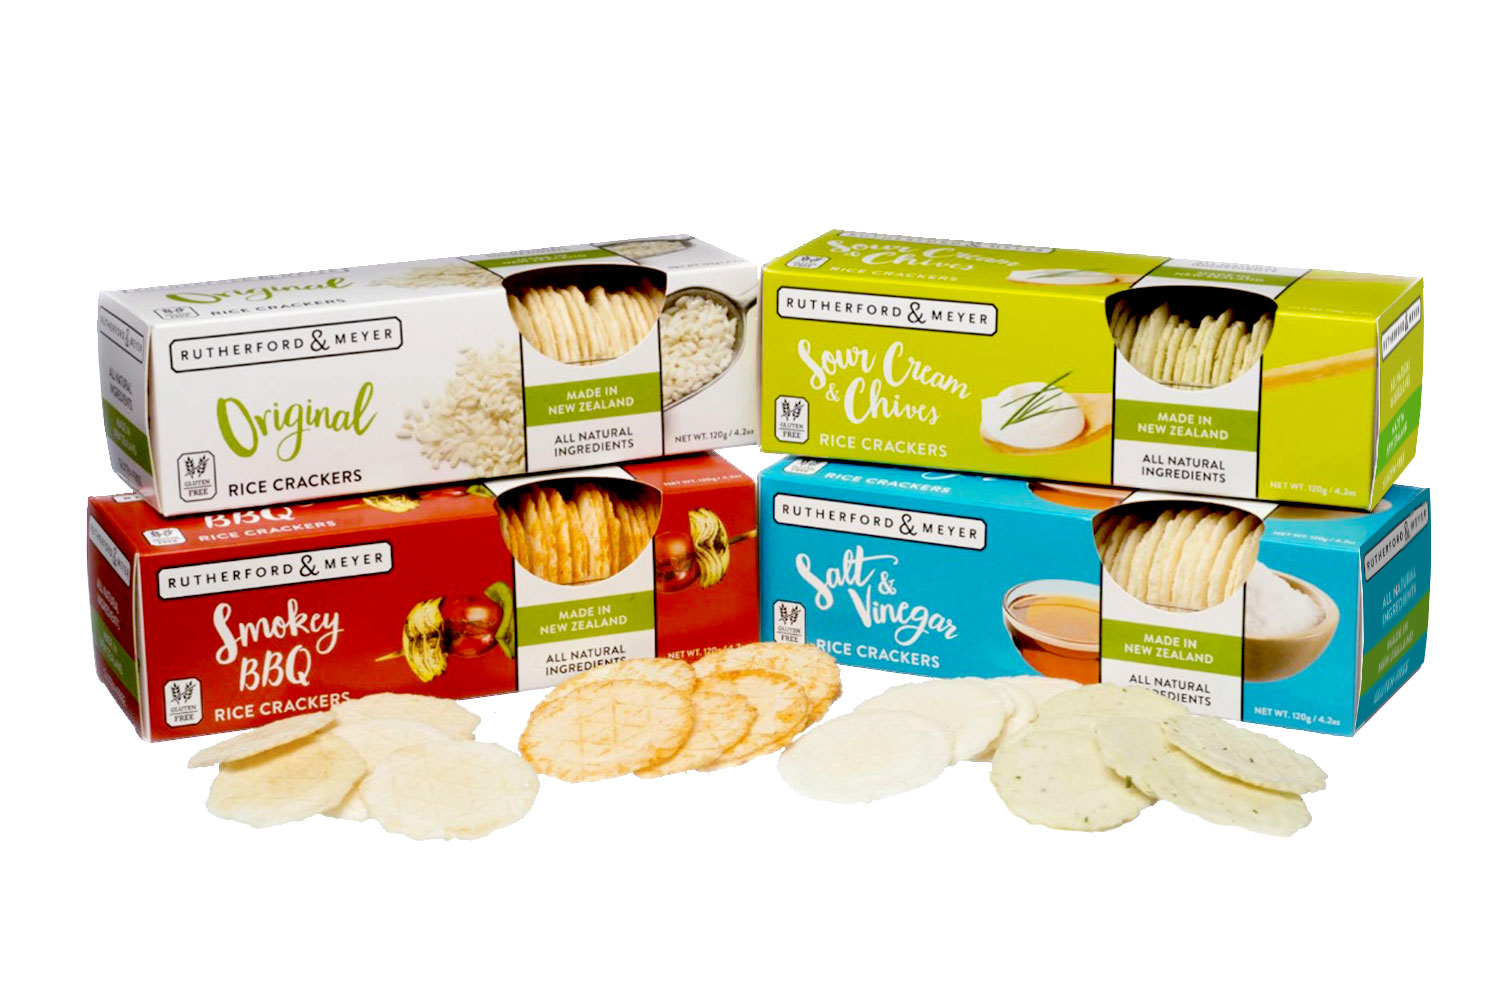 Copy of Rutherford & Meyer, Packaging, Rice Crackers